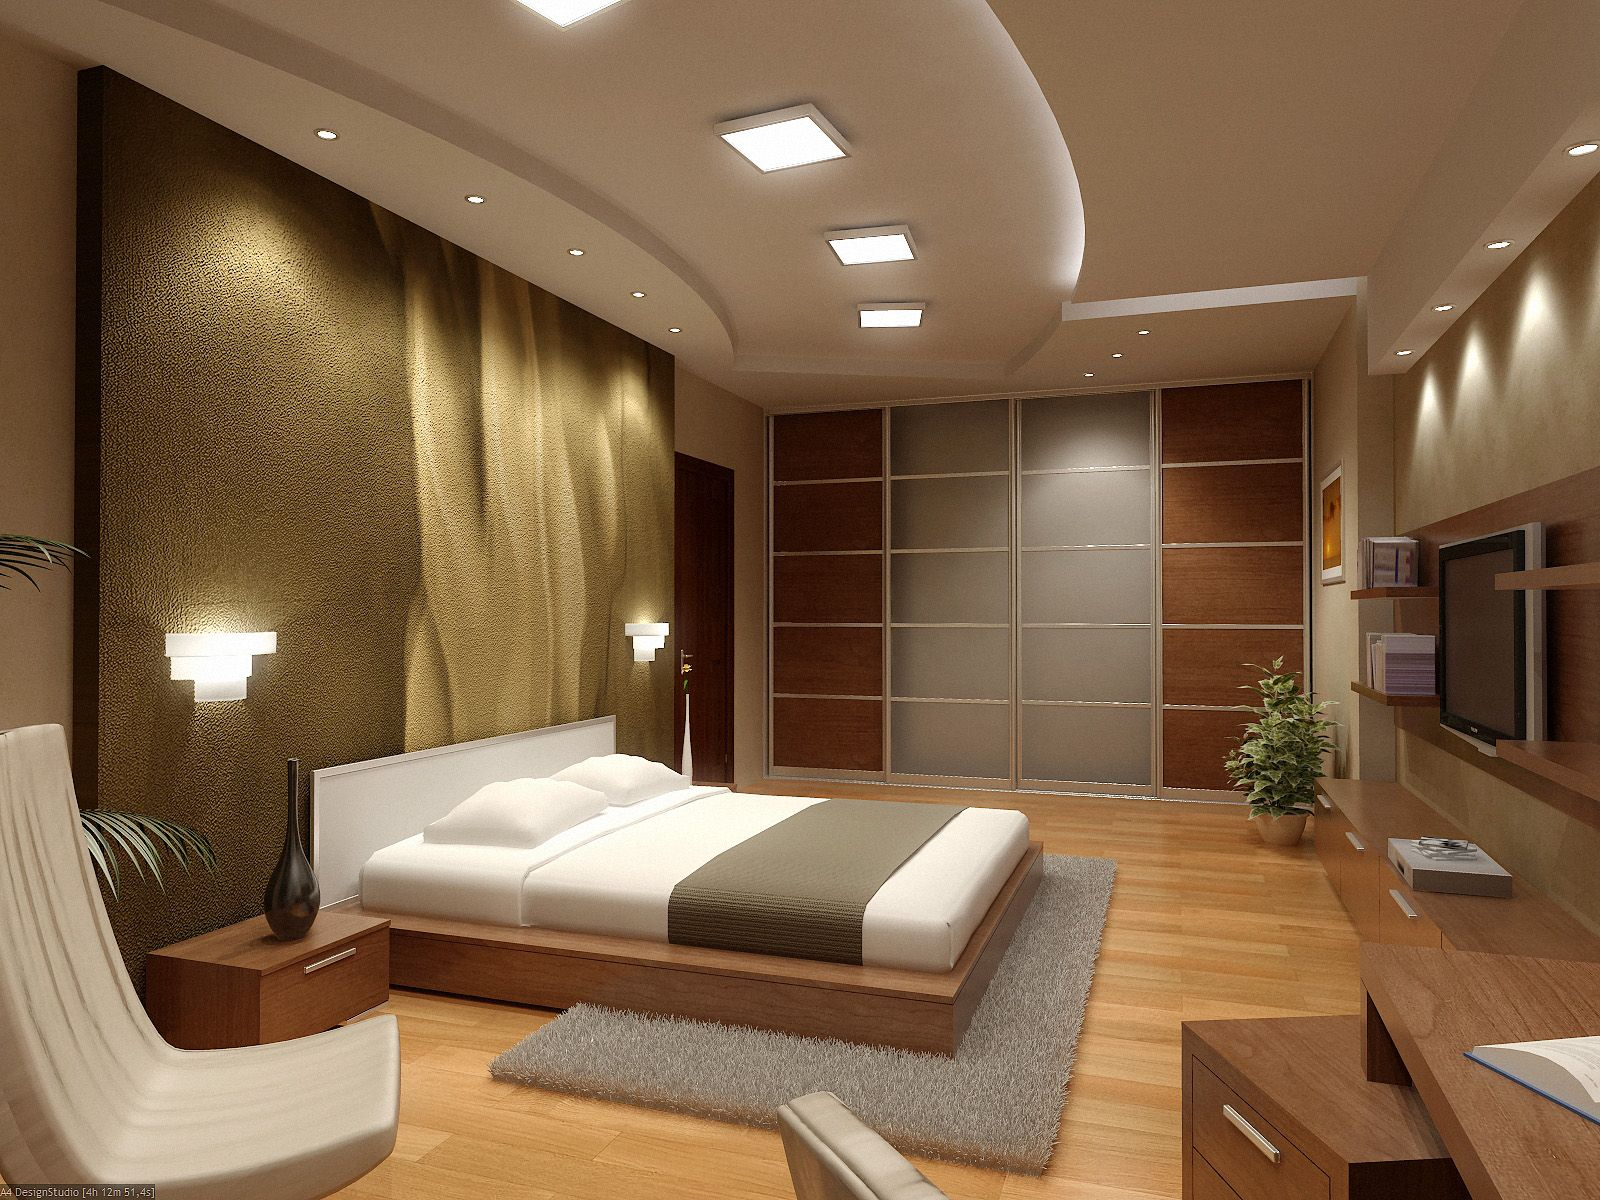 New home designs latest modern homes luxury interior for Innovative bedroom designs